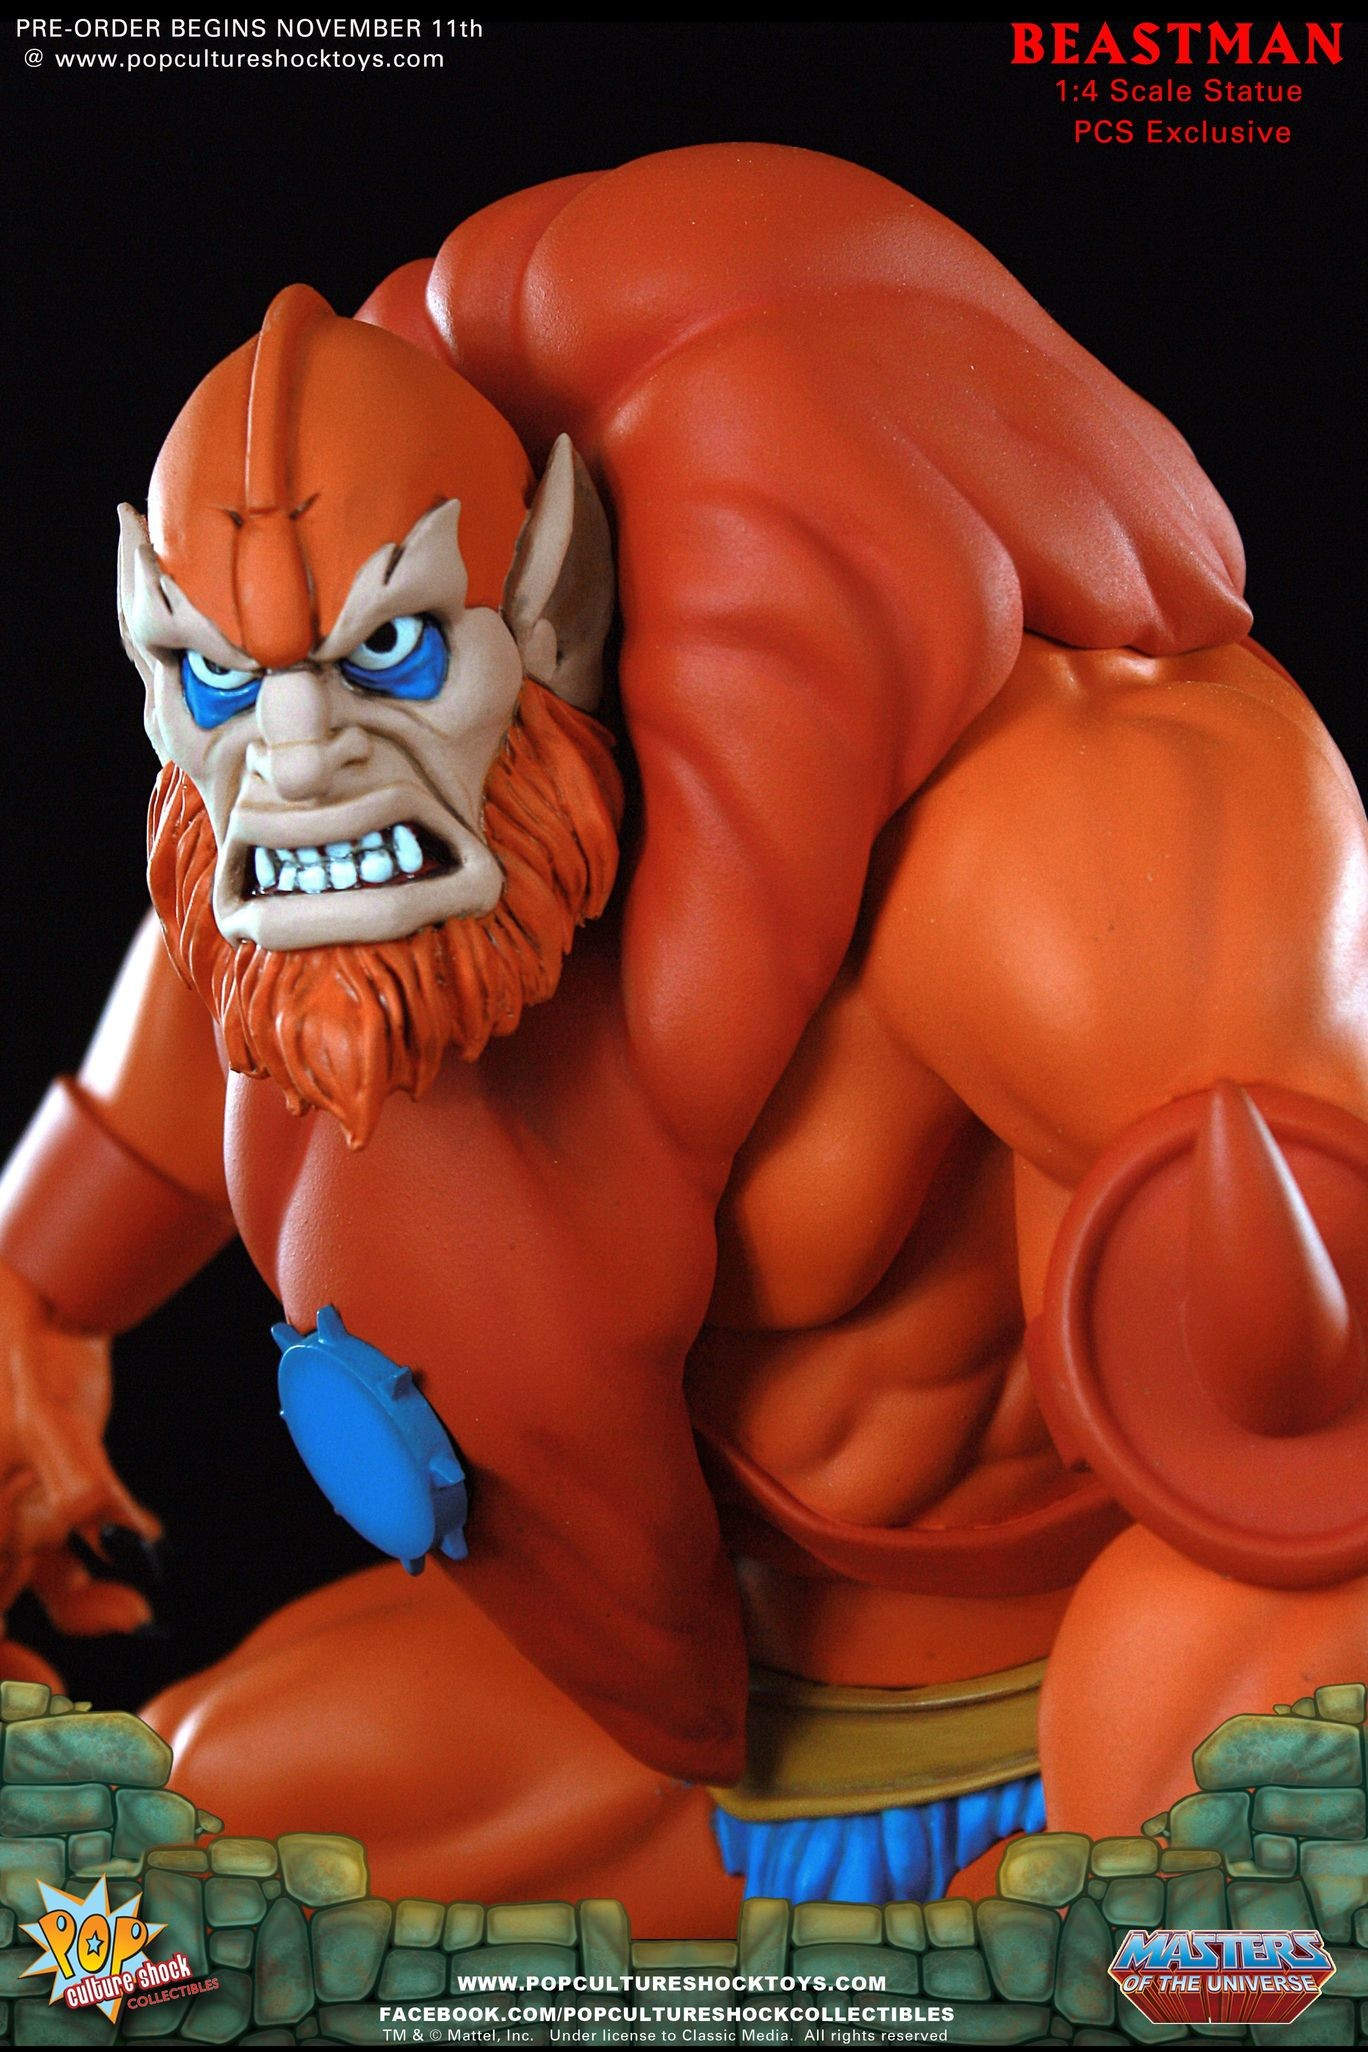 Alejandro pereira beastman exclusive edition motu pop culture shock 06